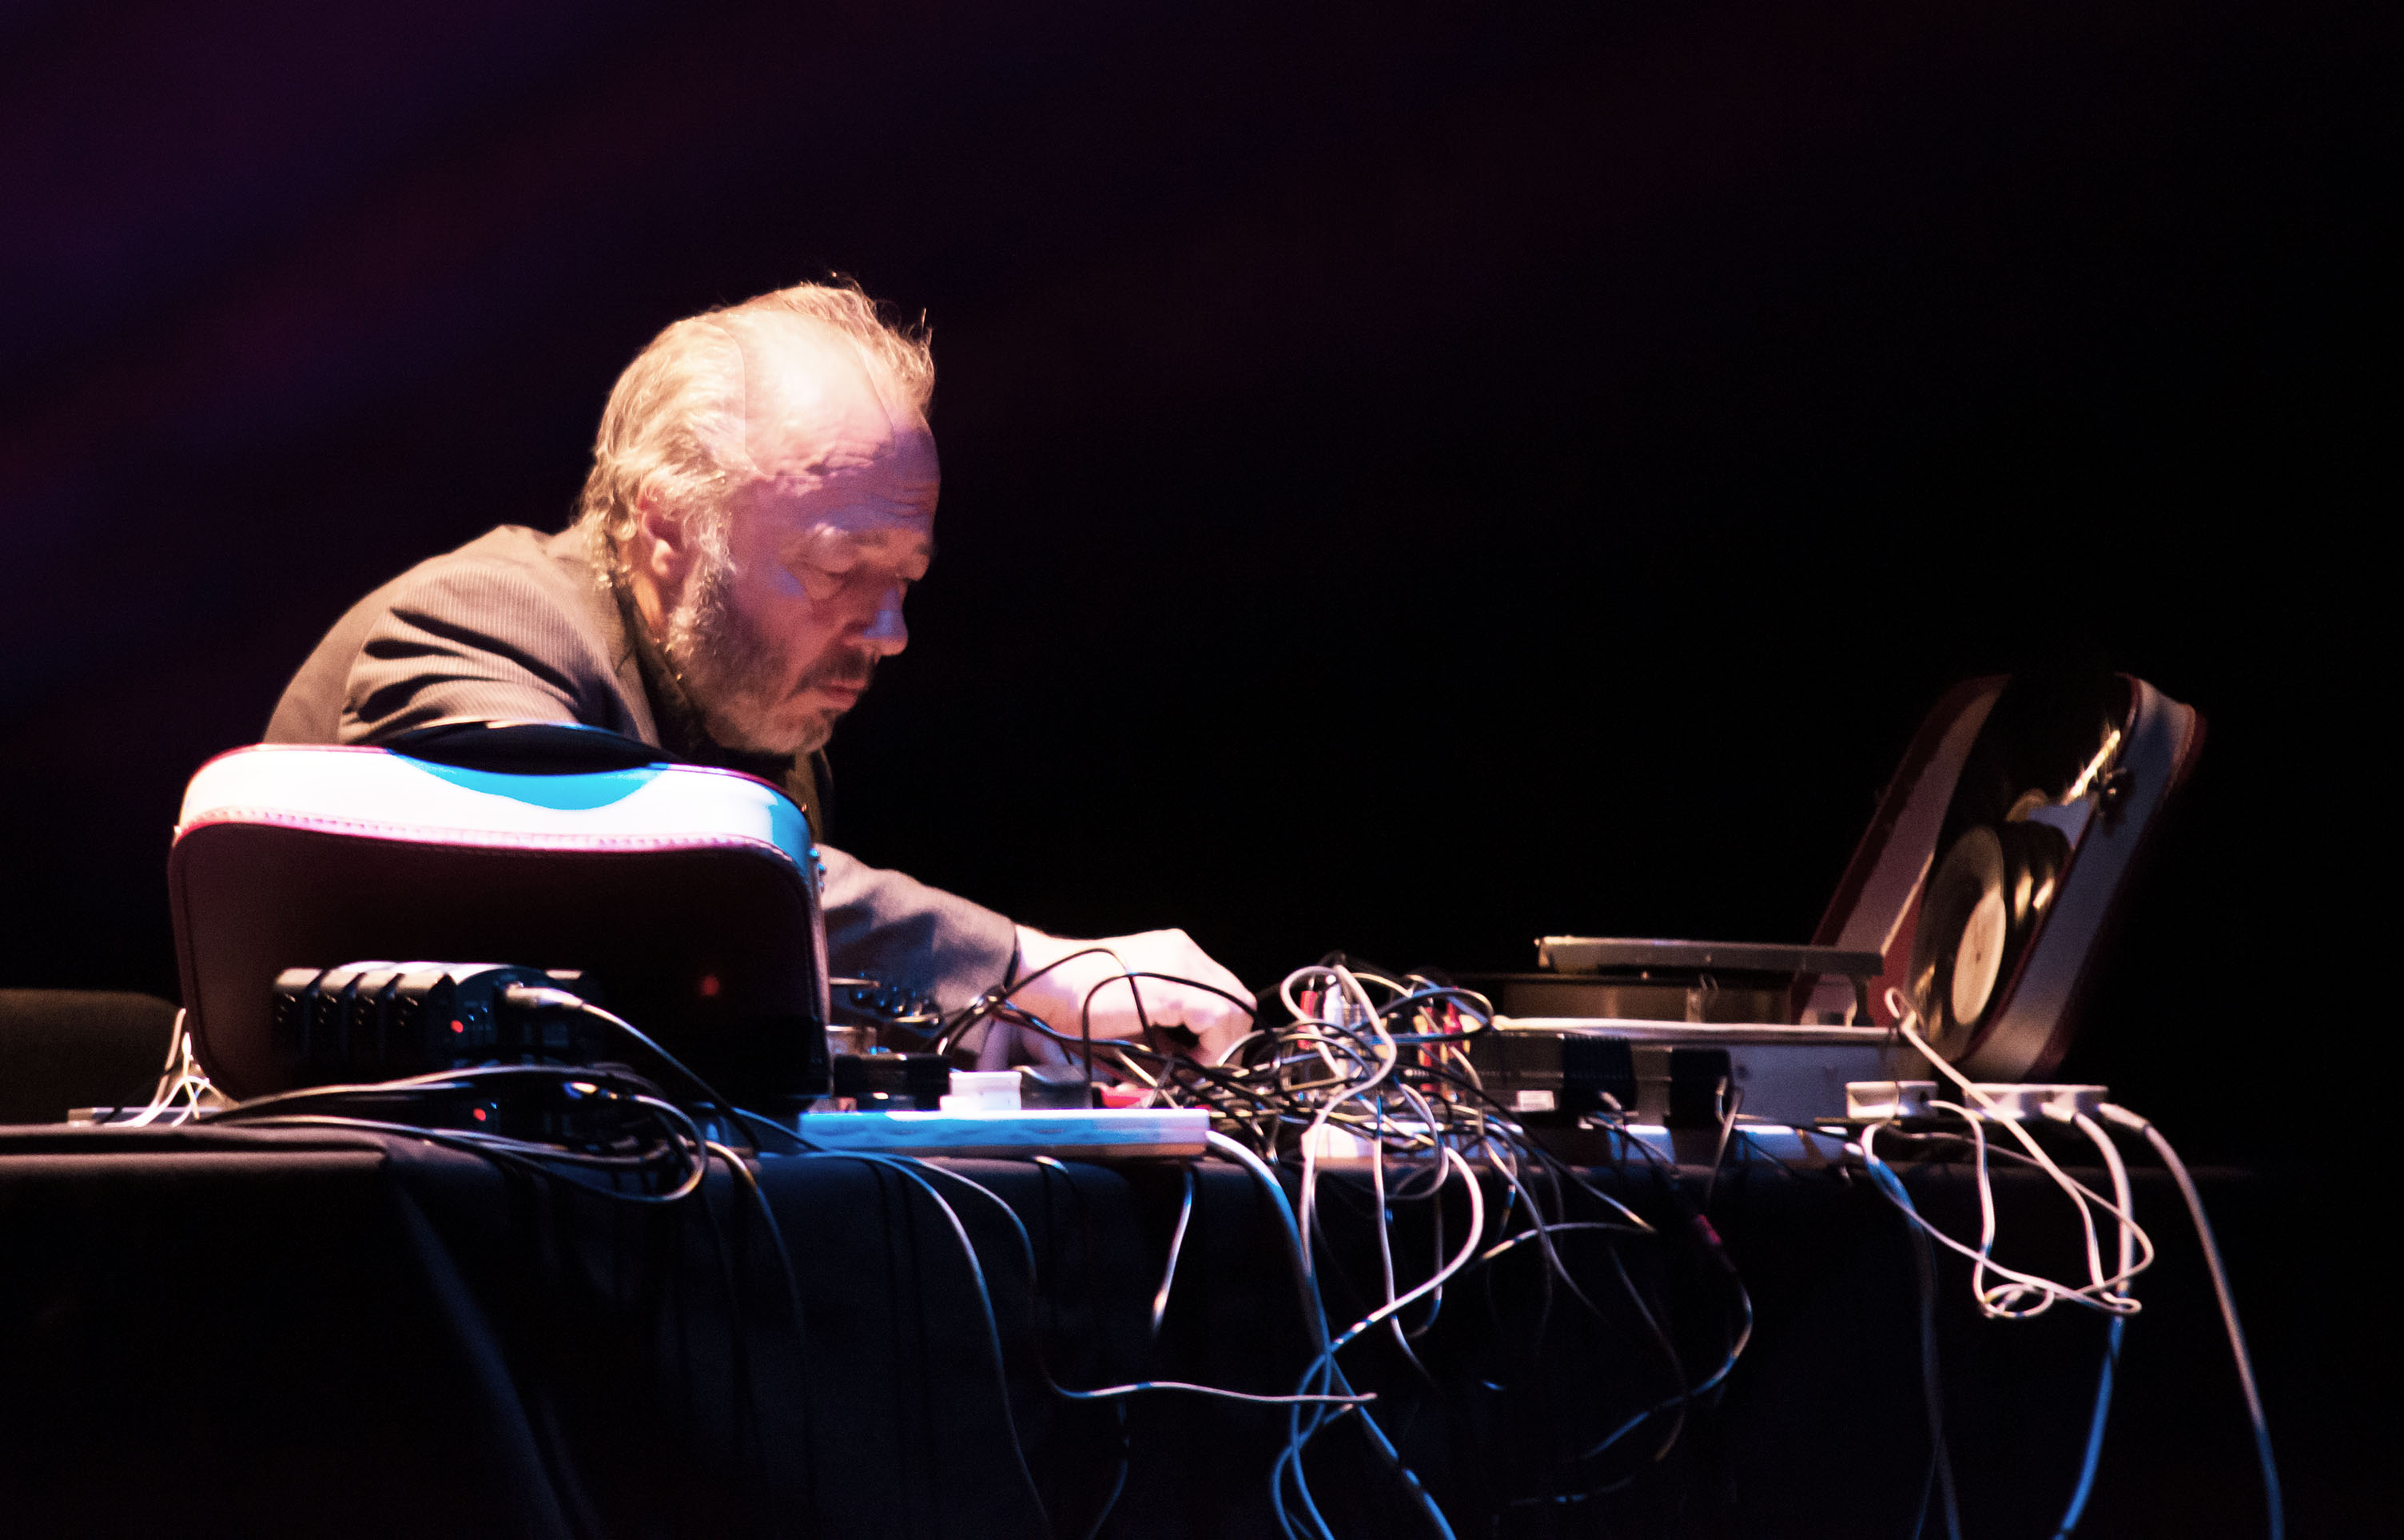 Sidsel endresen with philip jeck @ scene norway 2